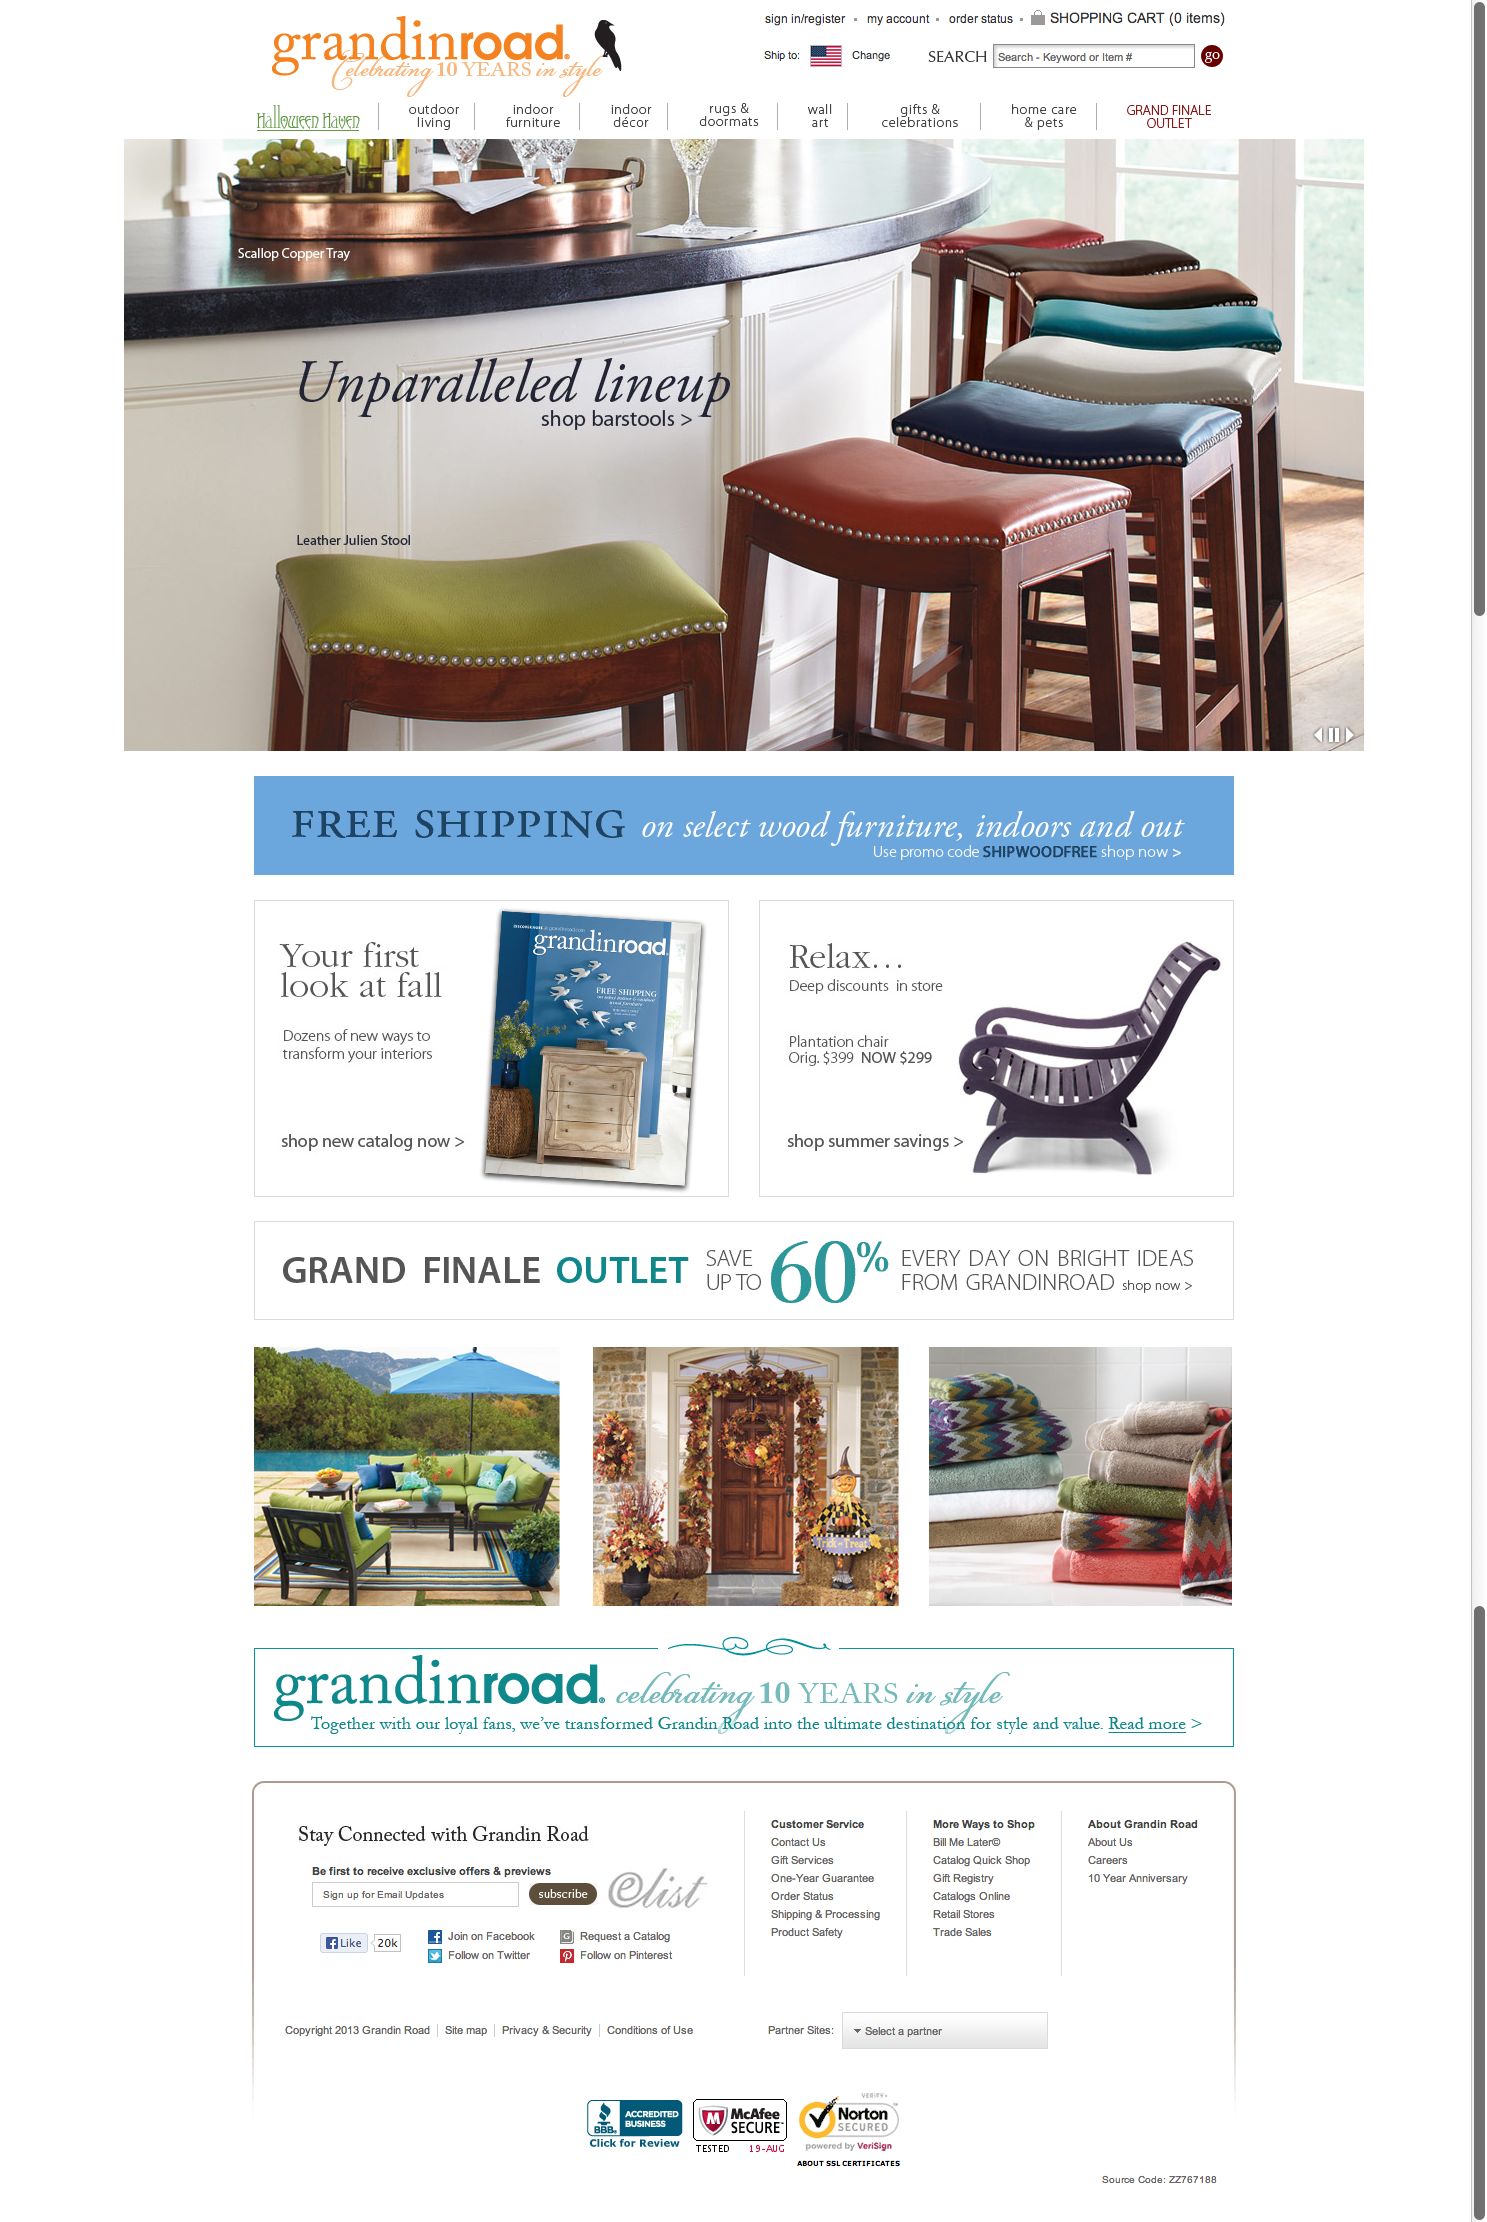 Grandin Road  Indoor Furniture  Wall Art  Halloween Costumes  and Designer Home Decor.png